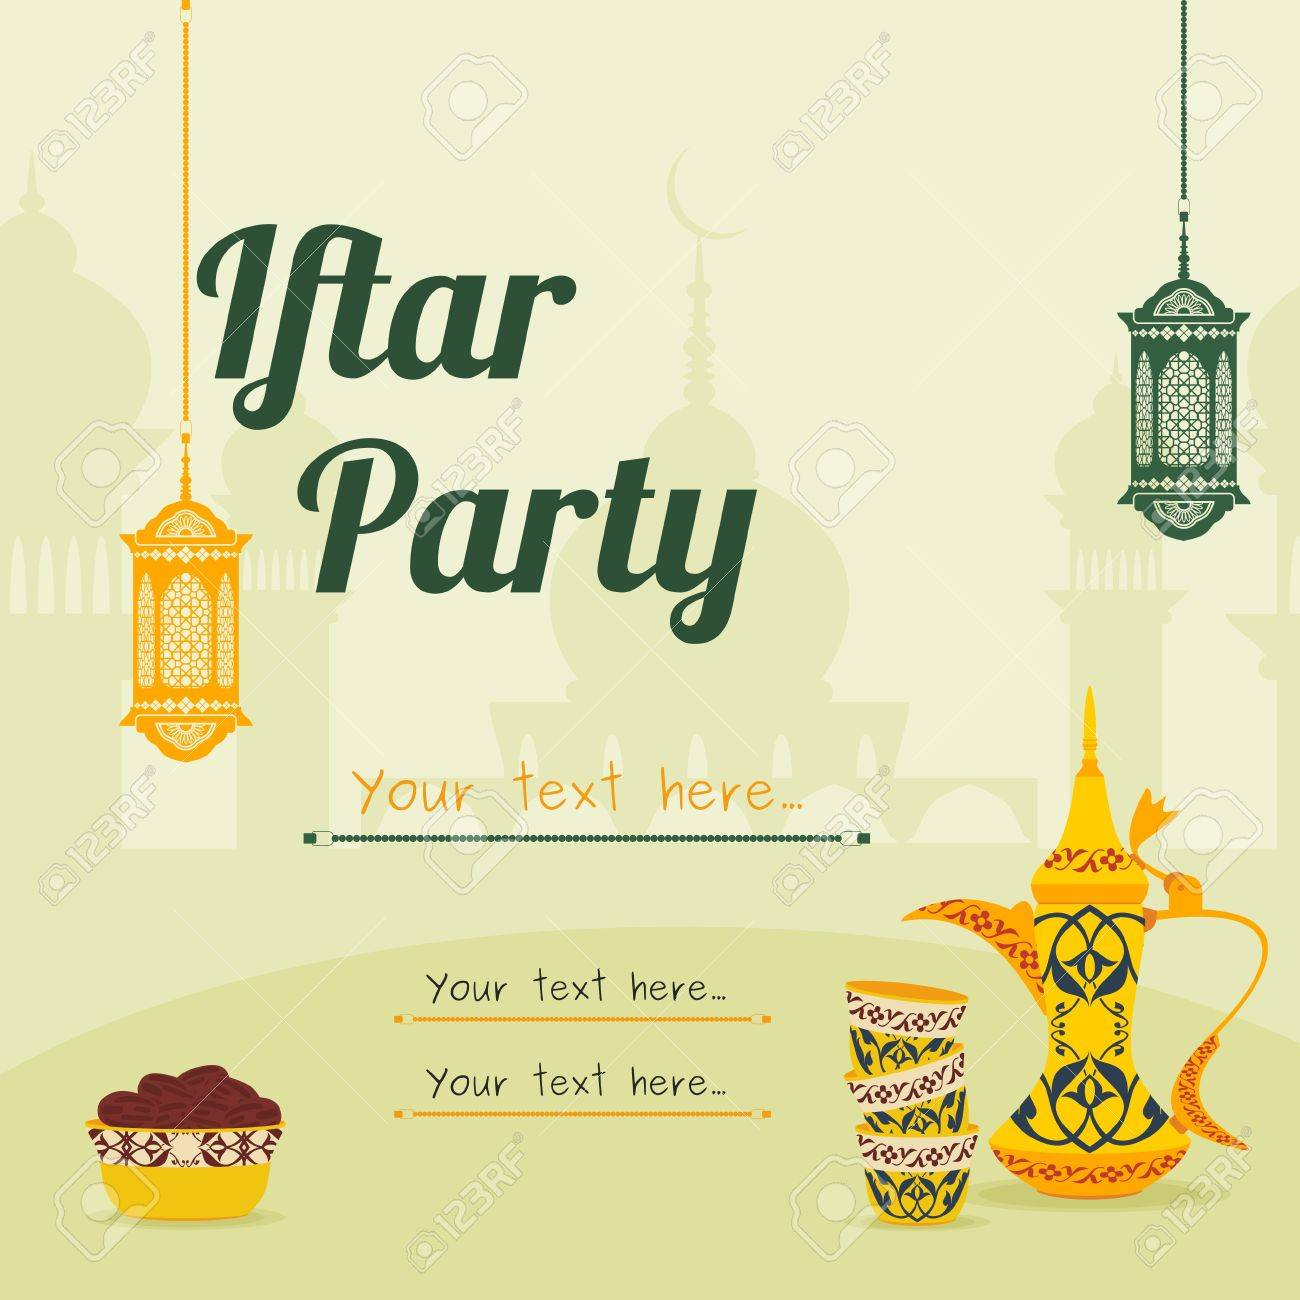 Editable Iftar Party Vector Background Concept For Poster Or